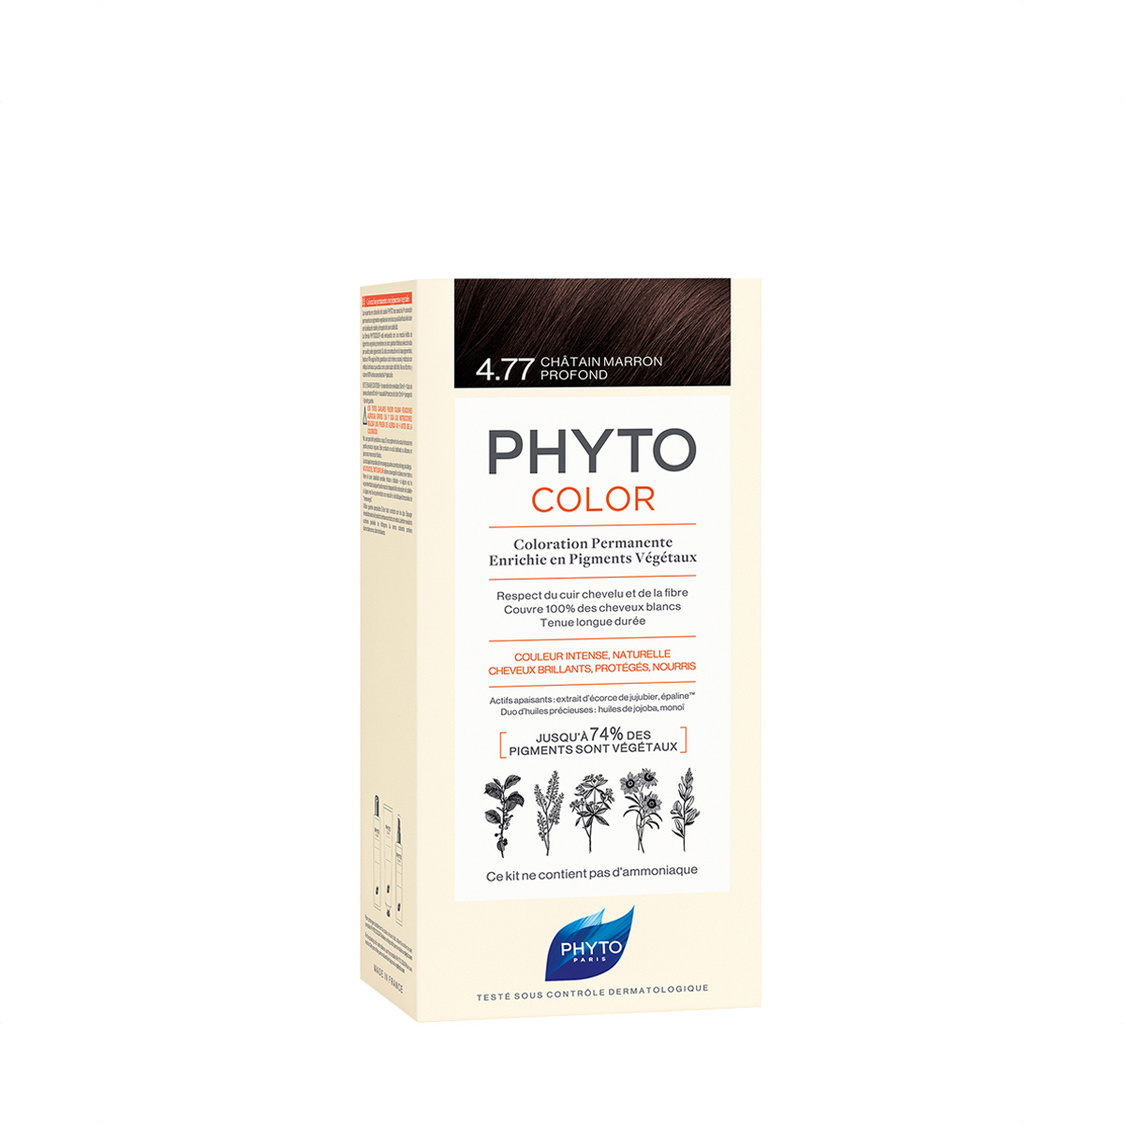 Phytocolor 477 Intense Chestnut Brown Col Cr 50ml  Lot 50ml PH10019A99926